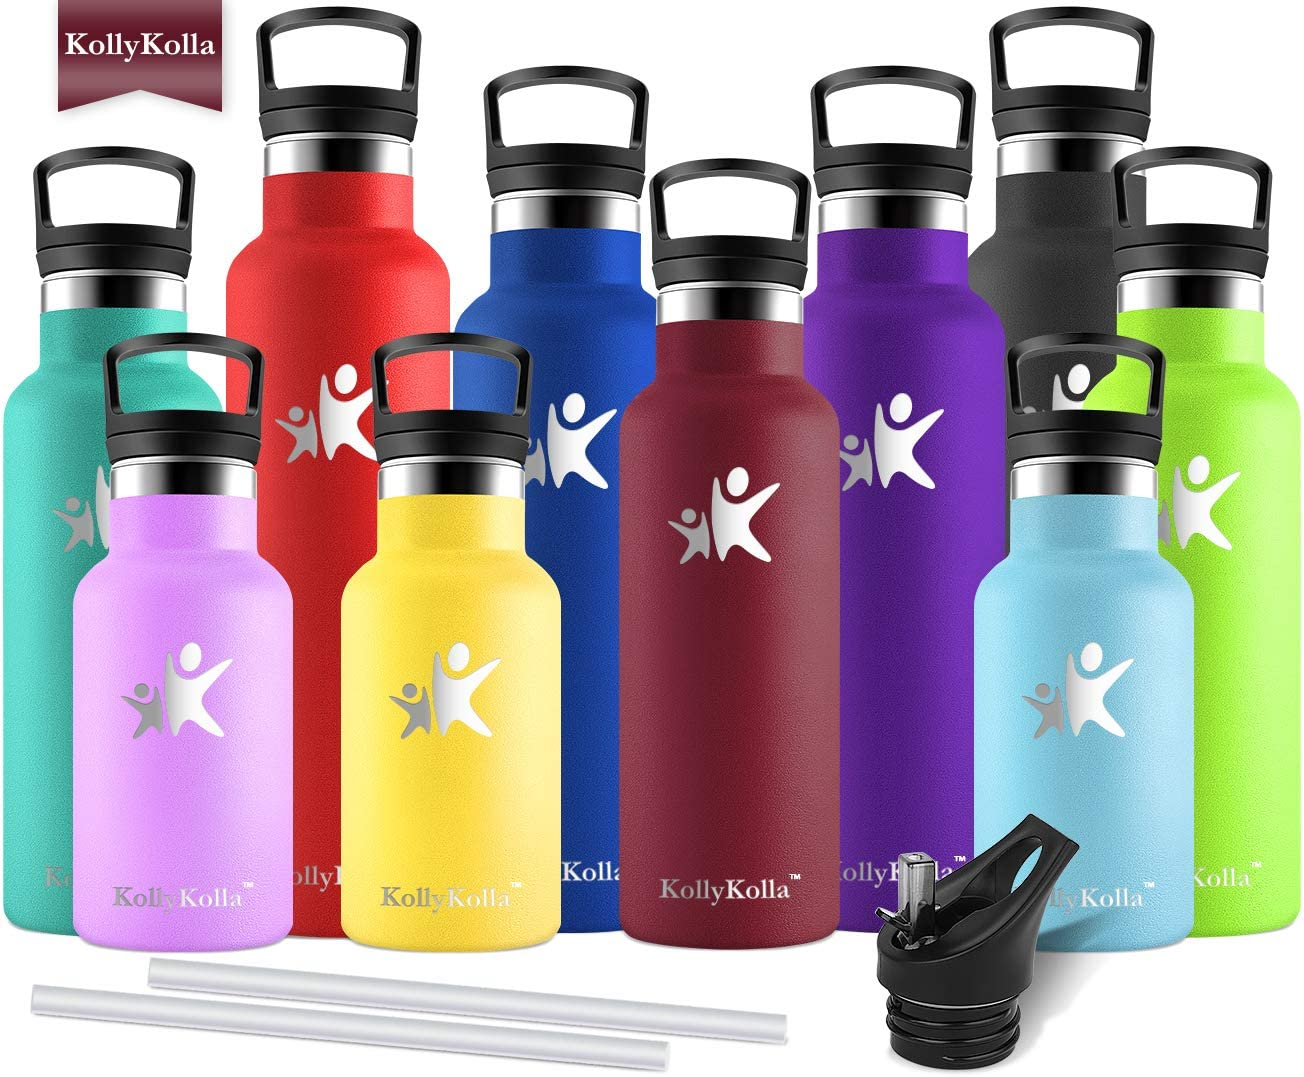 KollyKolla Stainless Steel Vacuum Insulated Water Bottle with Straw 12//17//20//25//32 oz BPA Free Metal Reusable Water Bottle Doubled Walled Keeps Hot /& Cold Leak Proof Drinks Bottle Kids Thermoflask